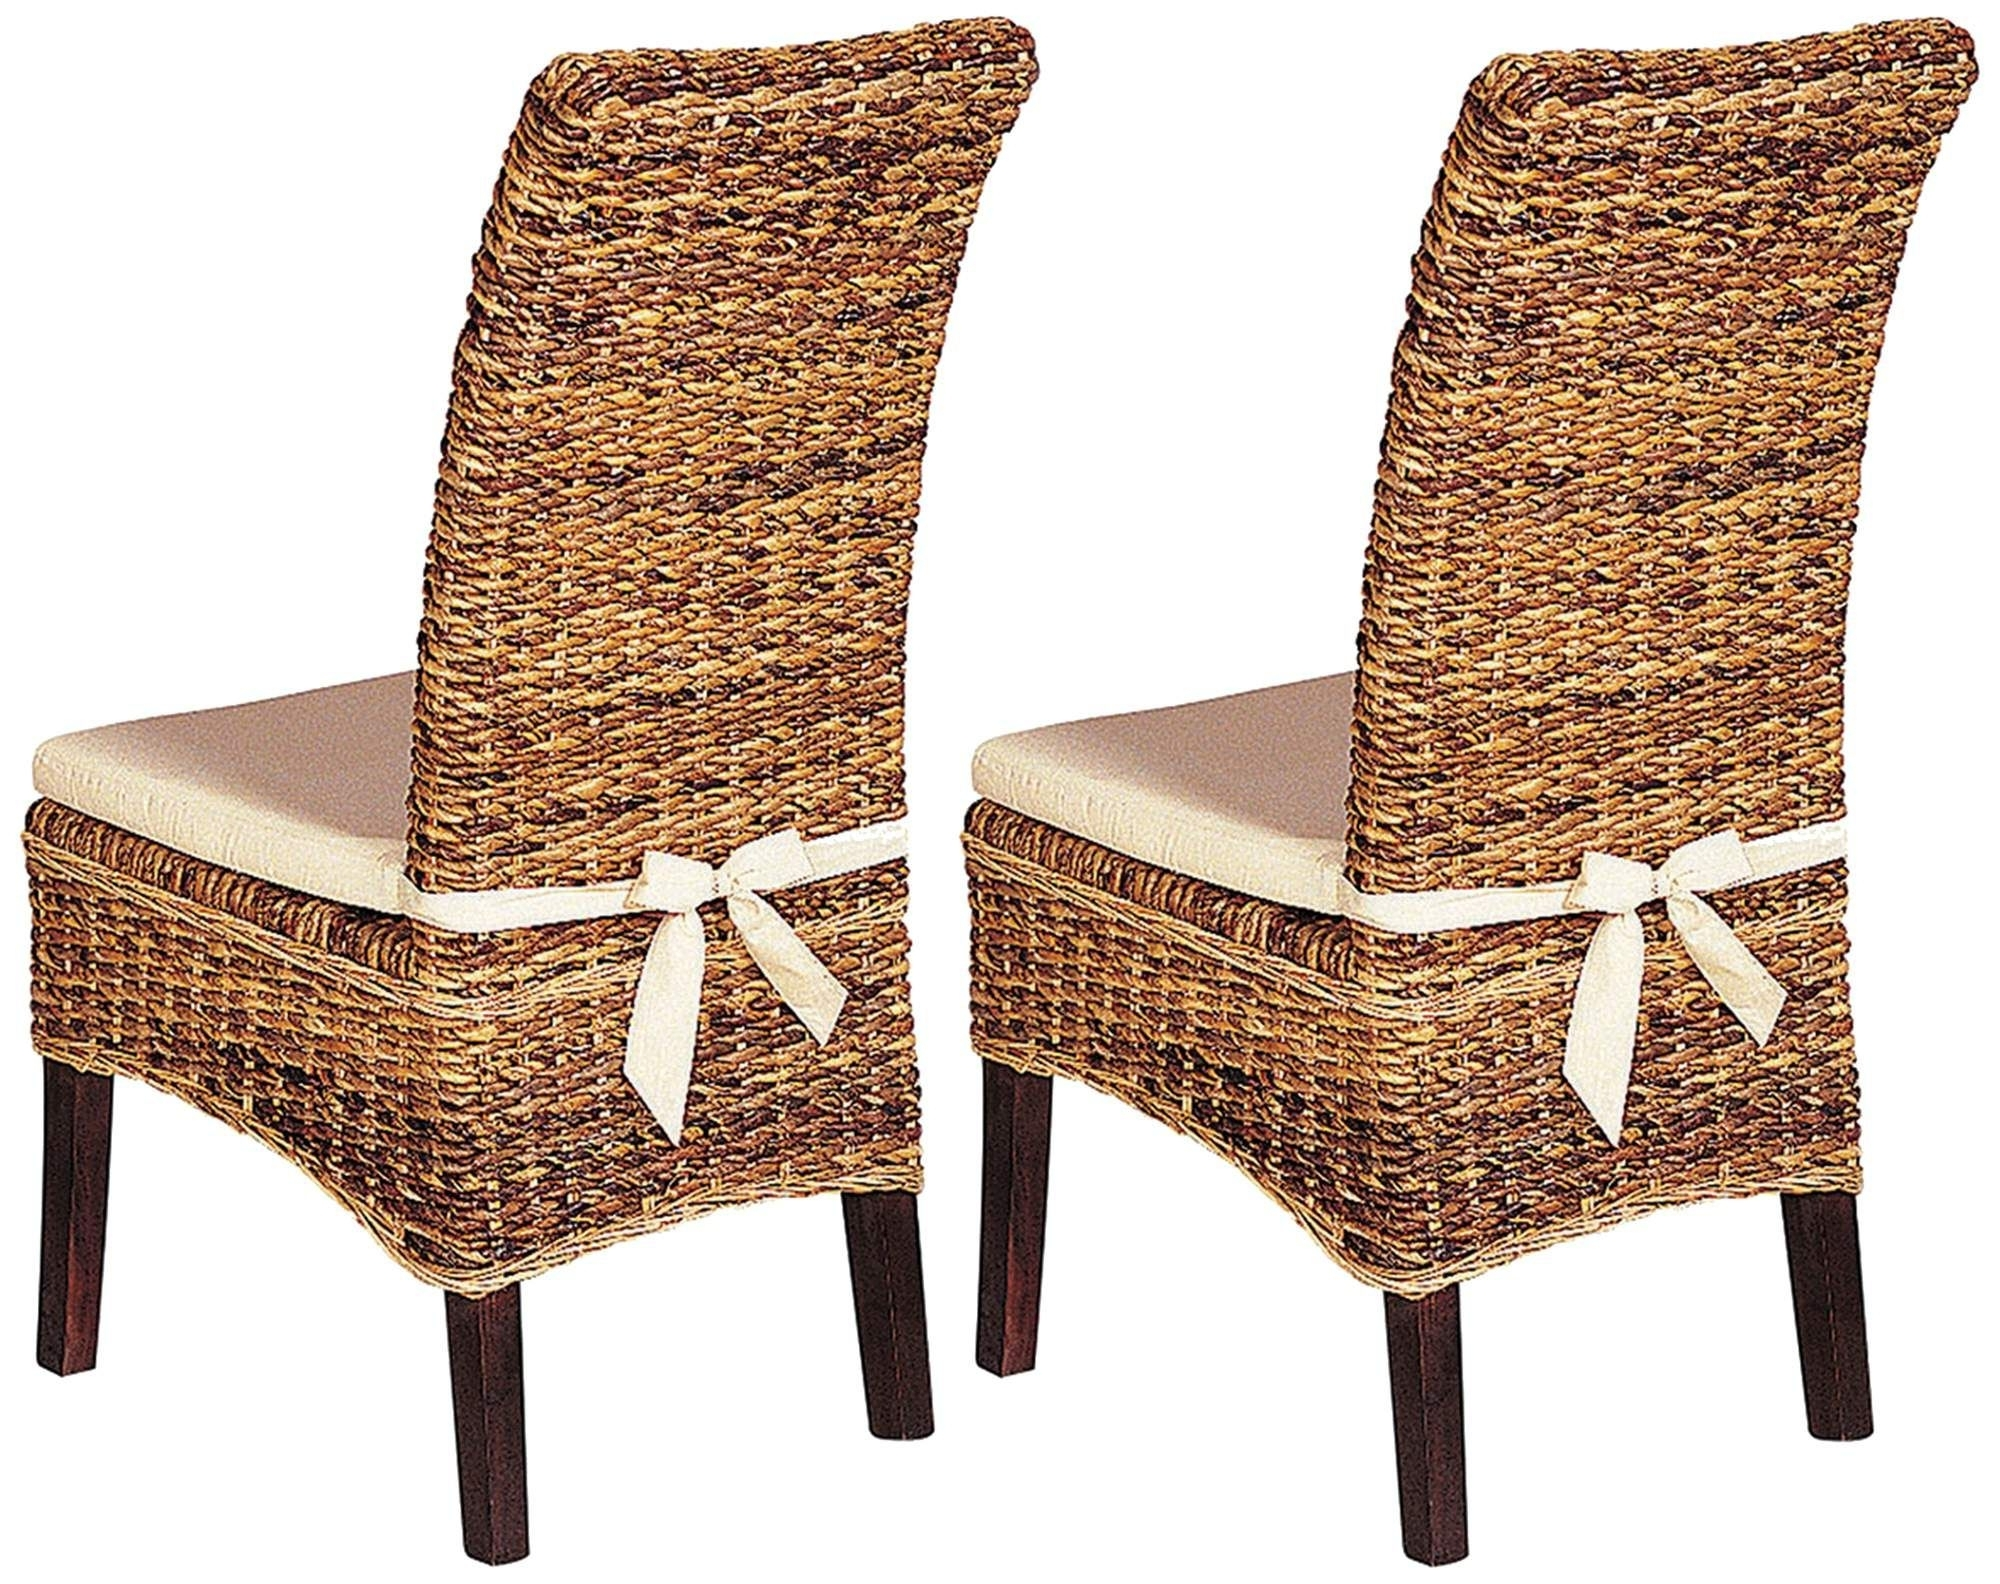 Banana Leaf Chairs With Cushion Throughout Well Known Set Of 2 Grass Roots Banana Leaf Dining Chairs With Cushions (View 4 of 20)